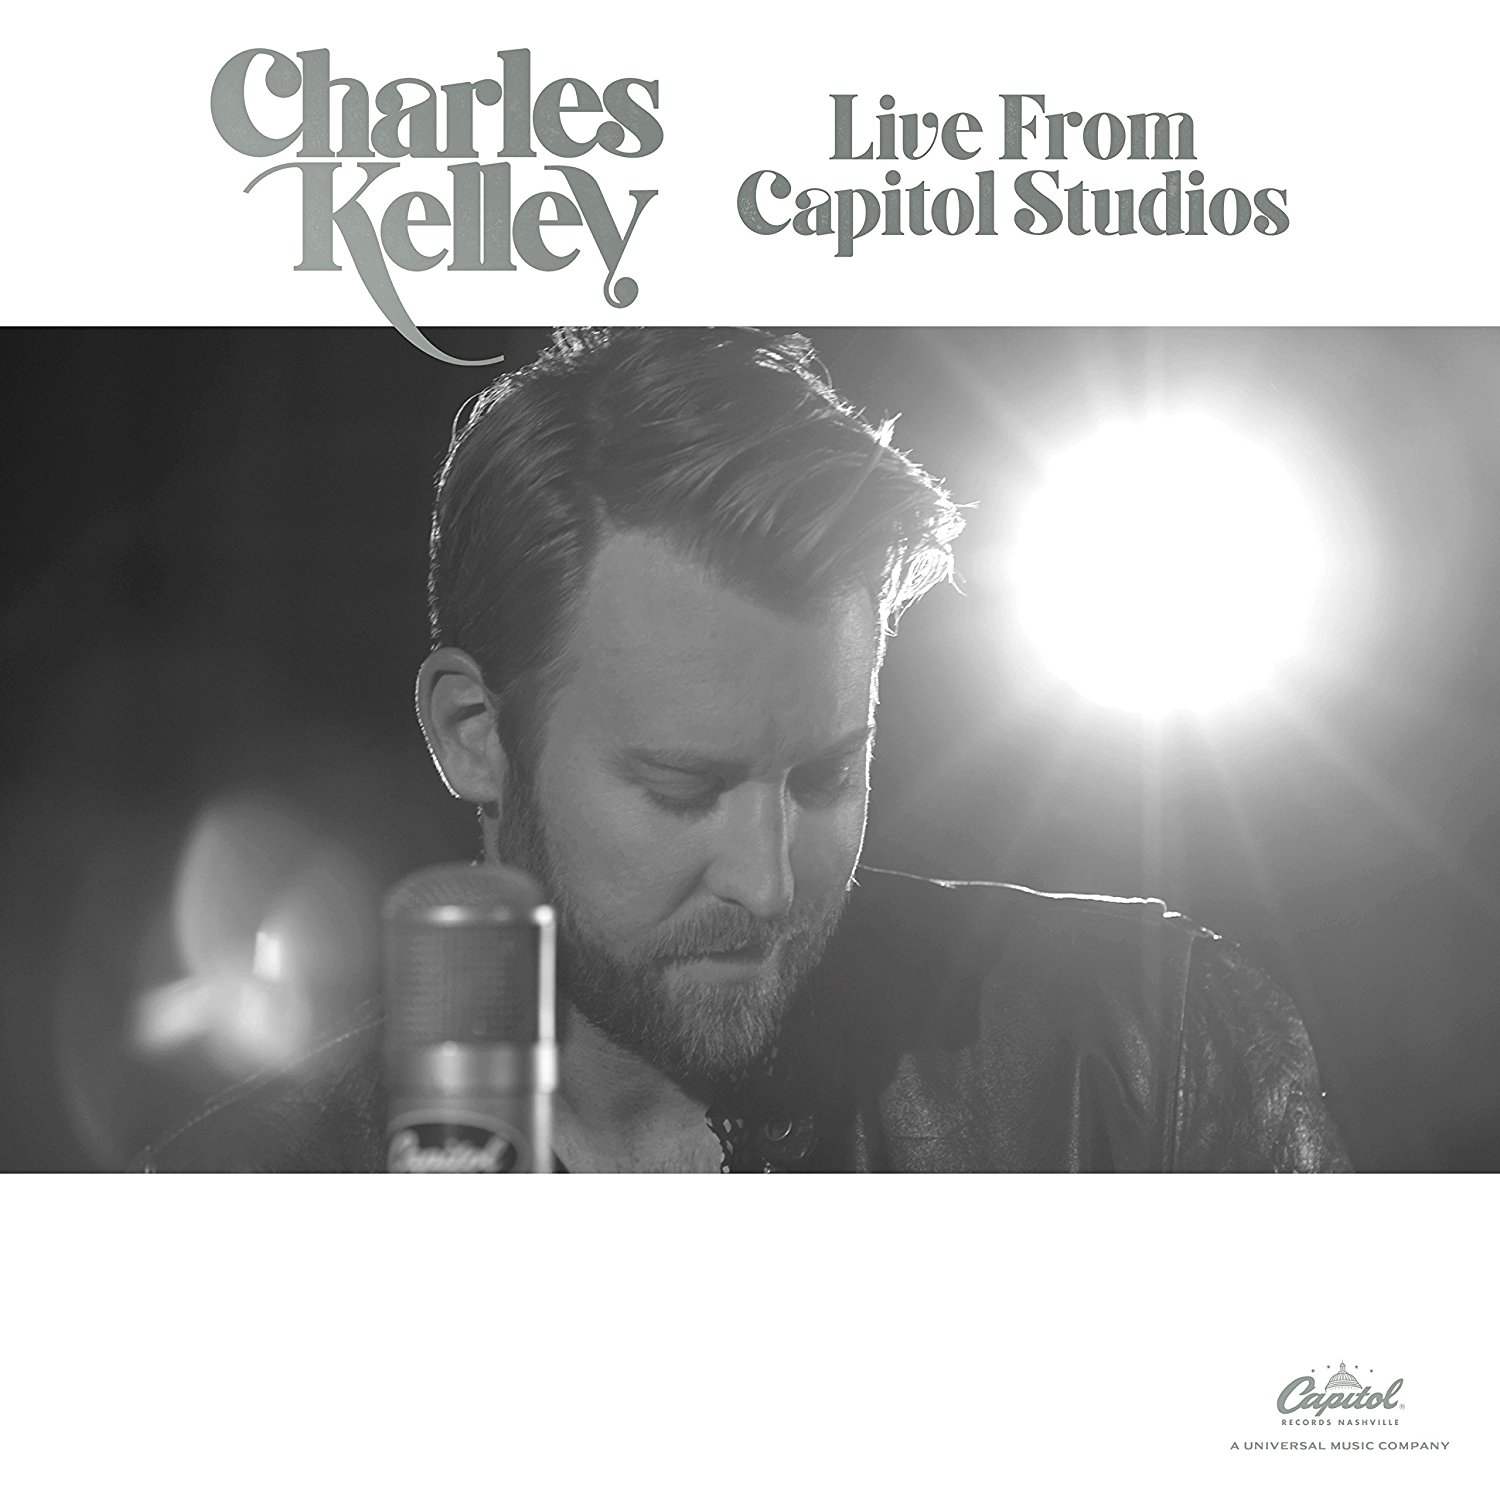 Charles Kelley - Live From Capitol Studios [Limited Edition 10in Vinyl]